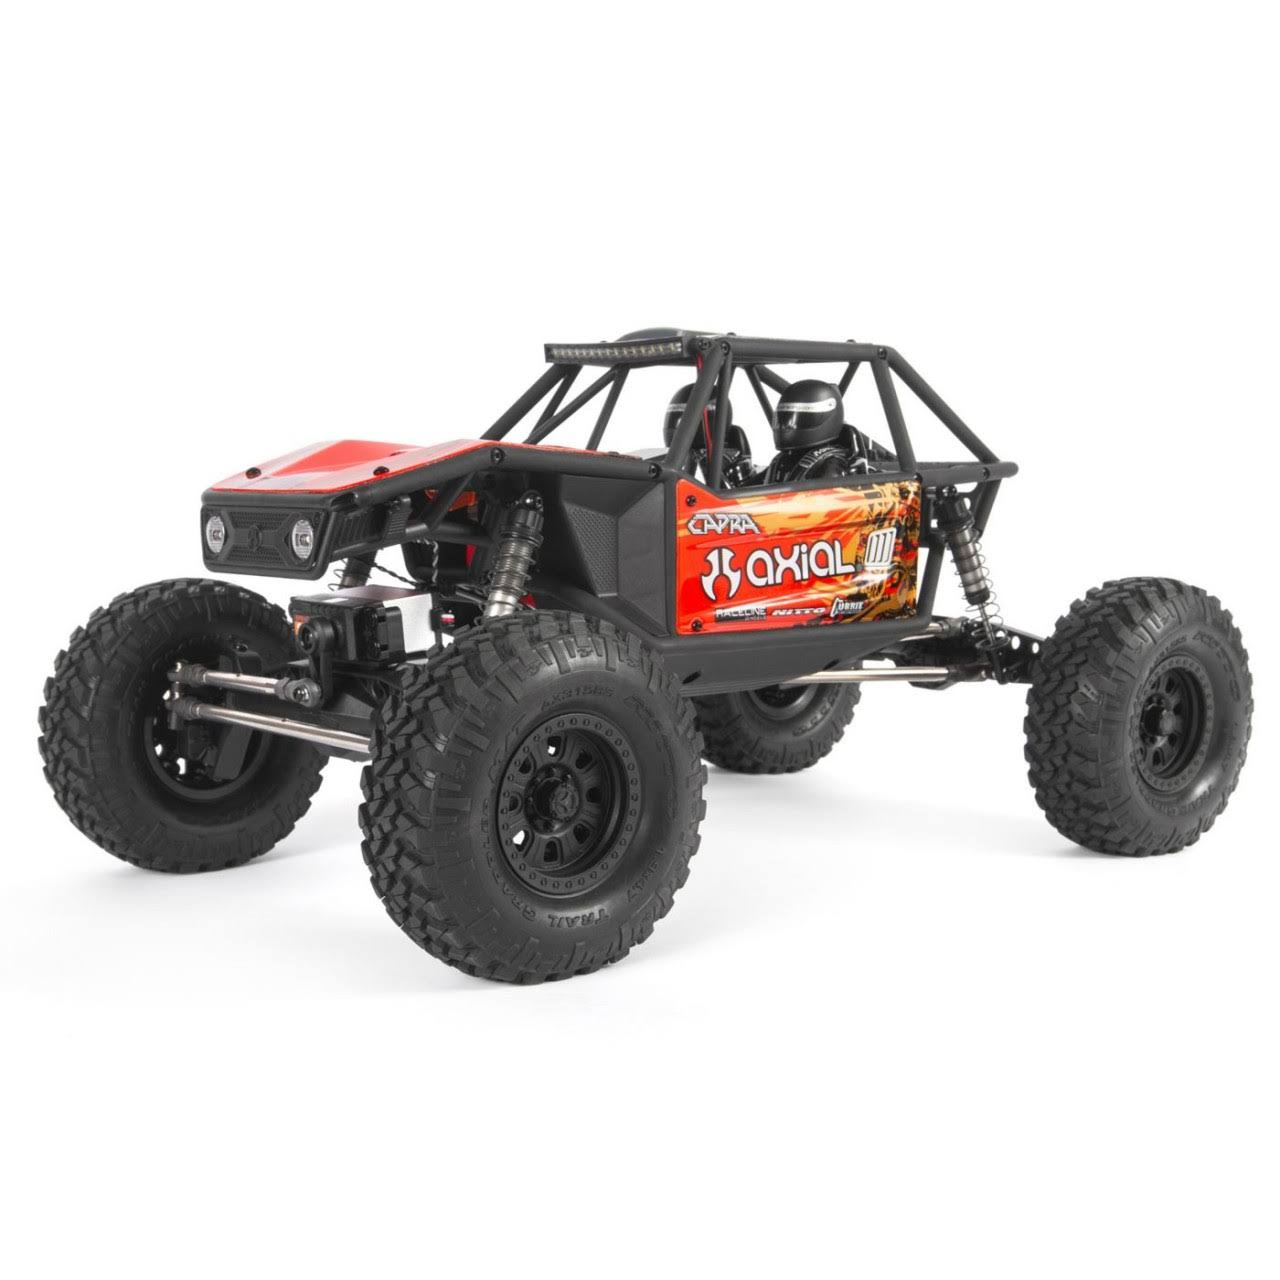 Axial Capra 1.9 Unlimited 4WD RTR Trail Buggy - Red